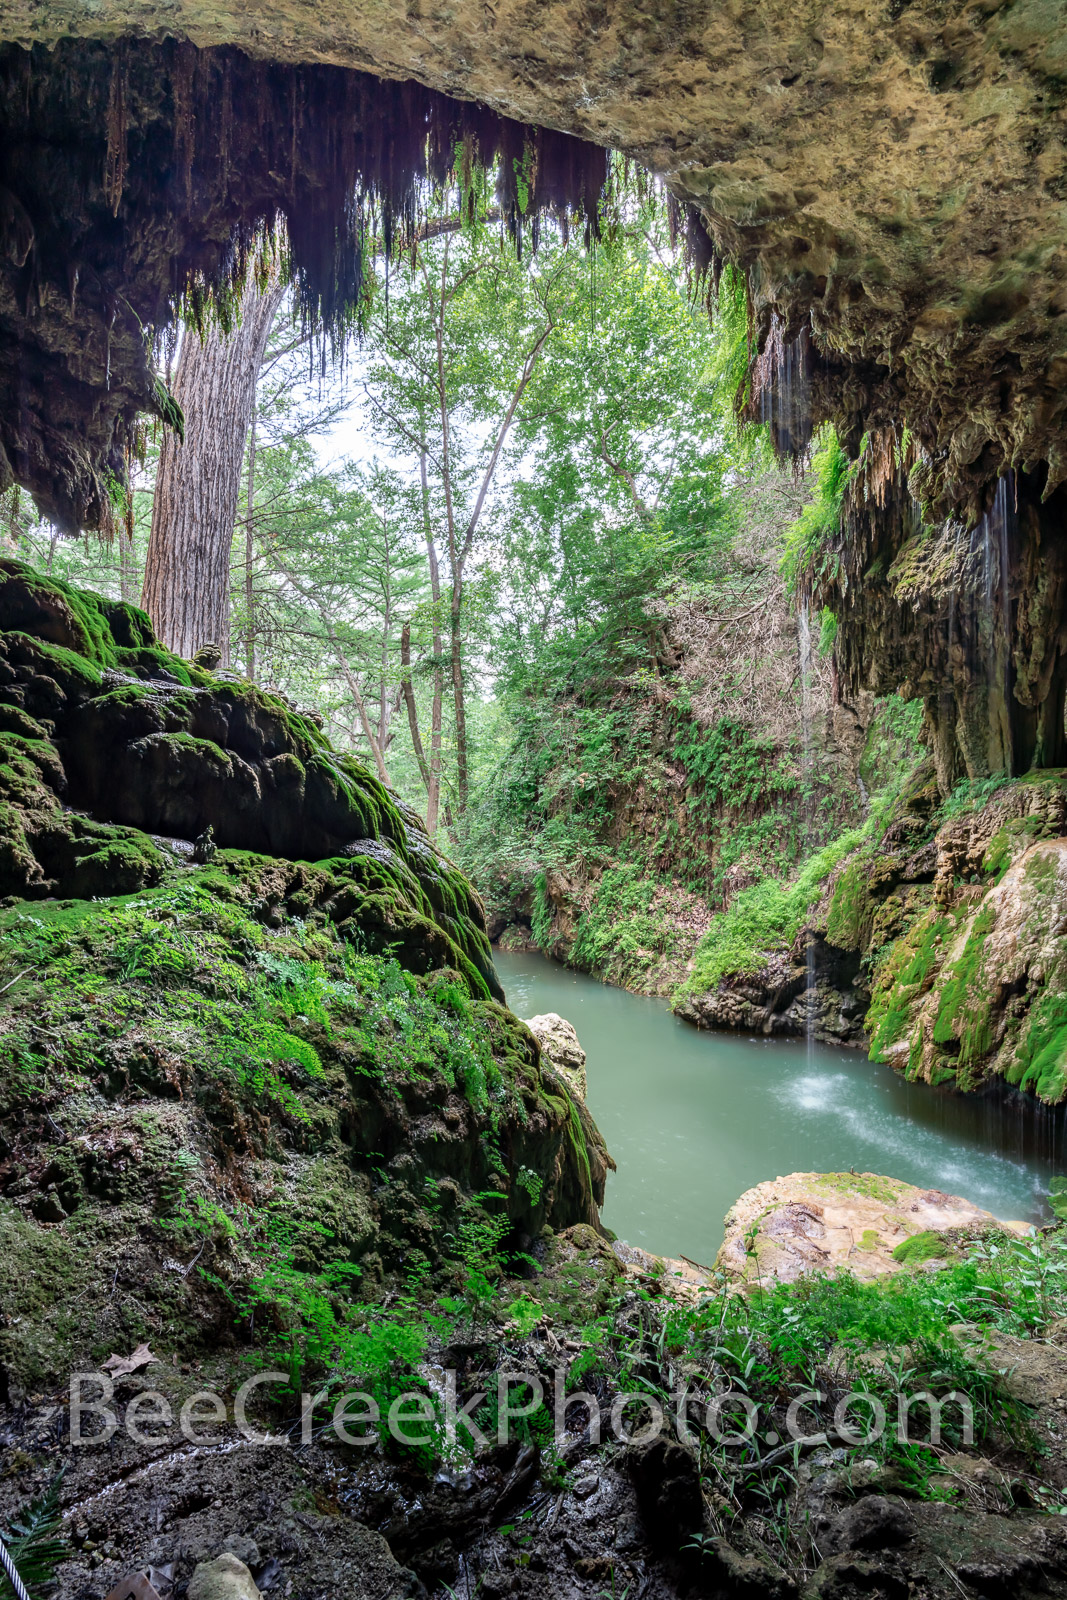 Texas Hill Country Grotto Vertical - From behind the grotto you can see what seems to be a tropical rain forest yet it is located...